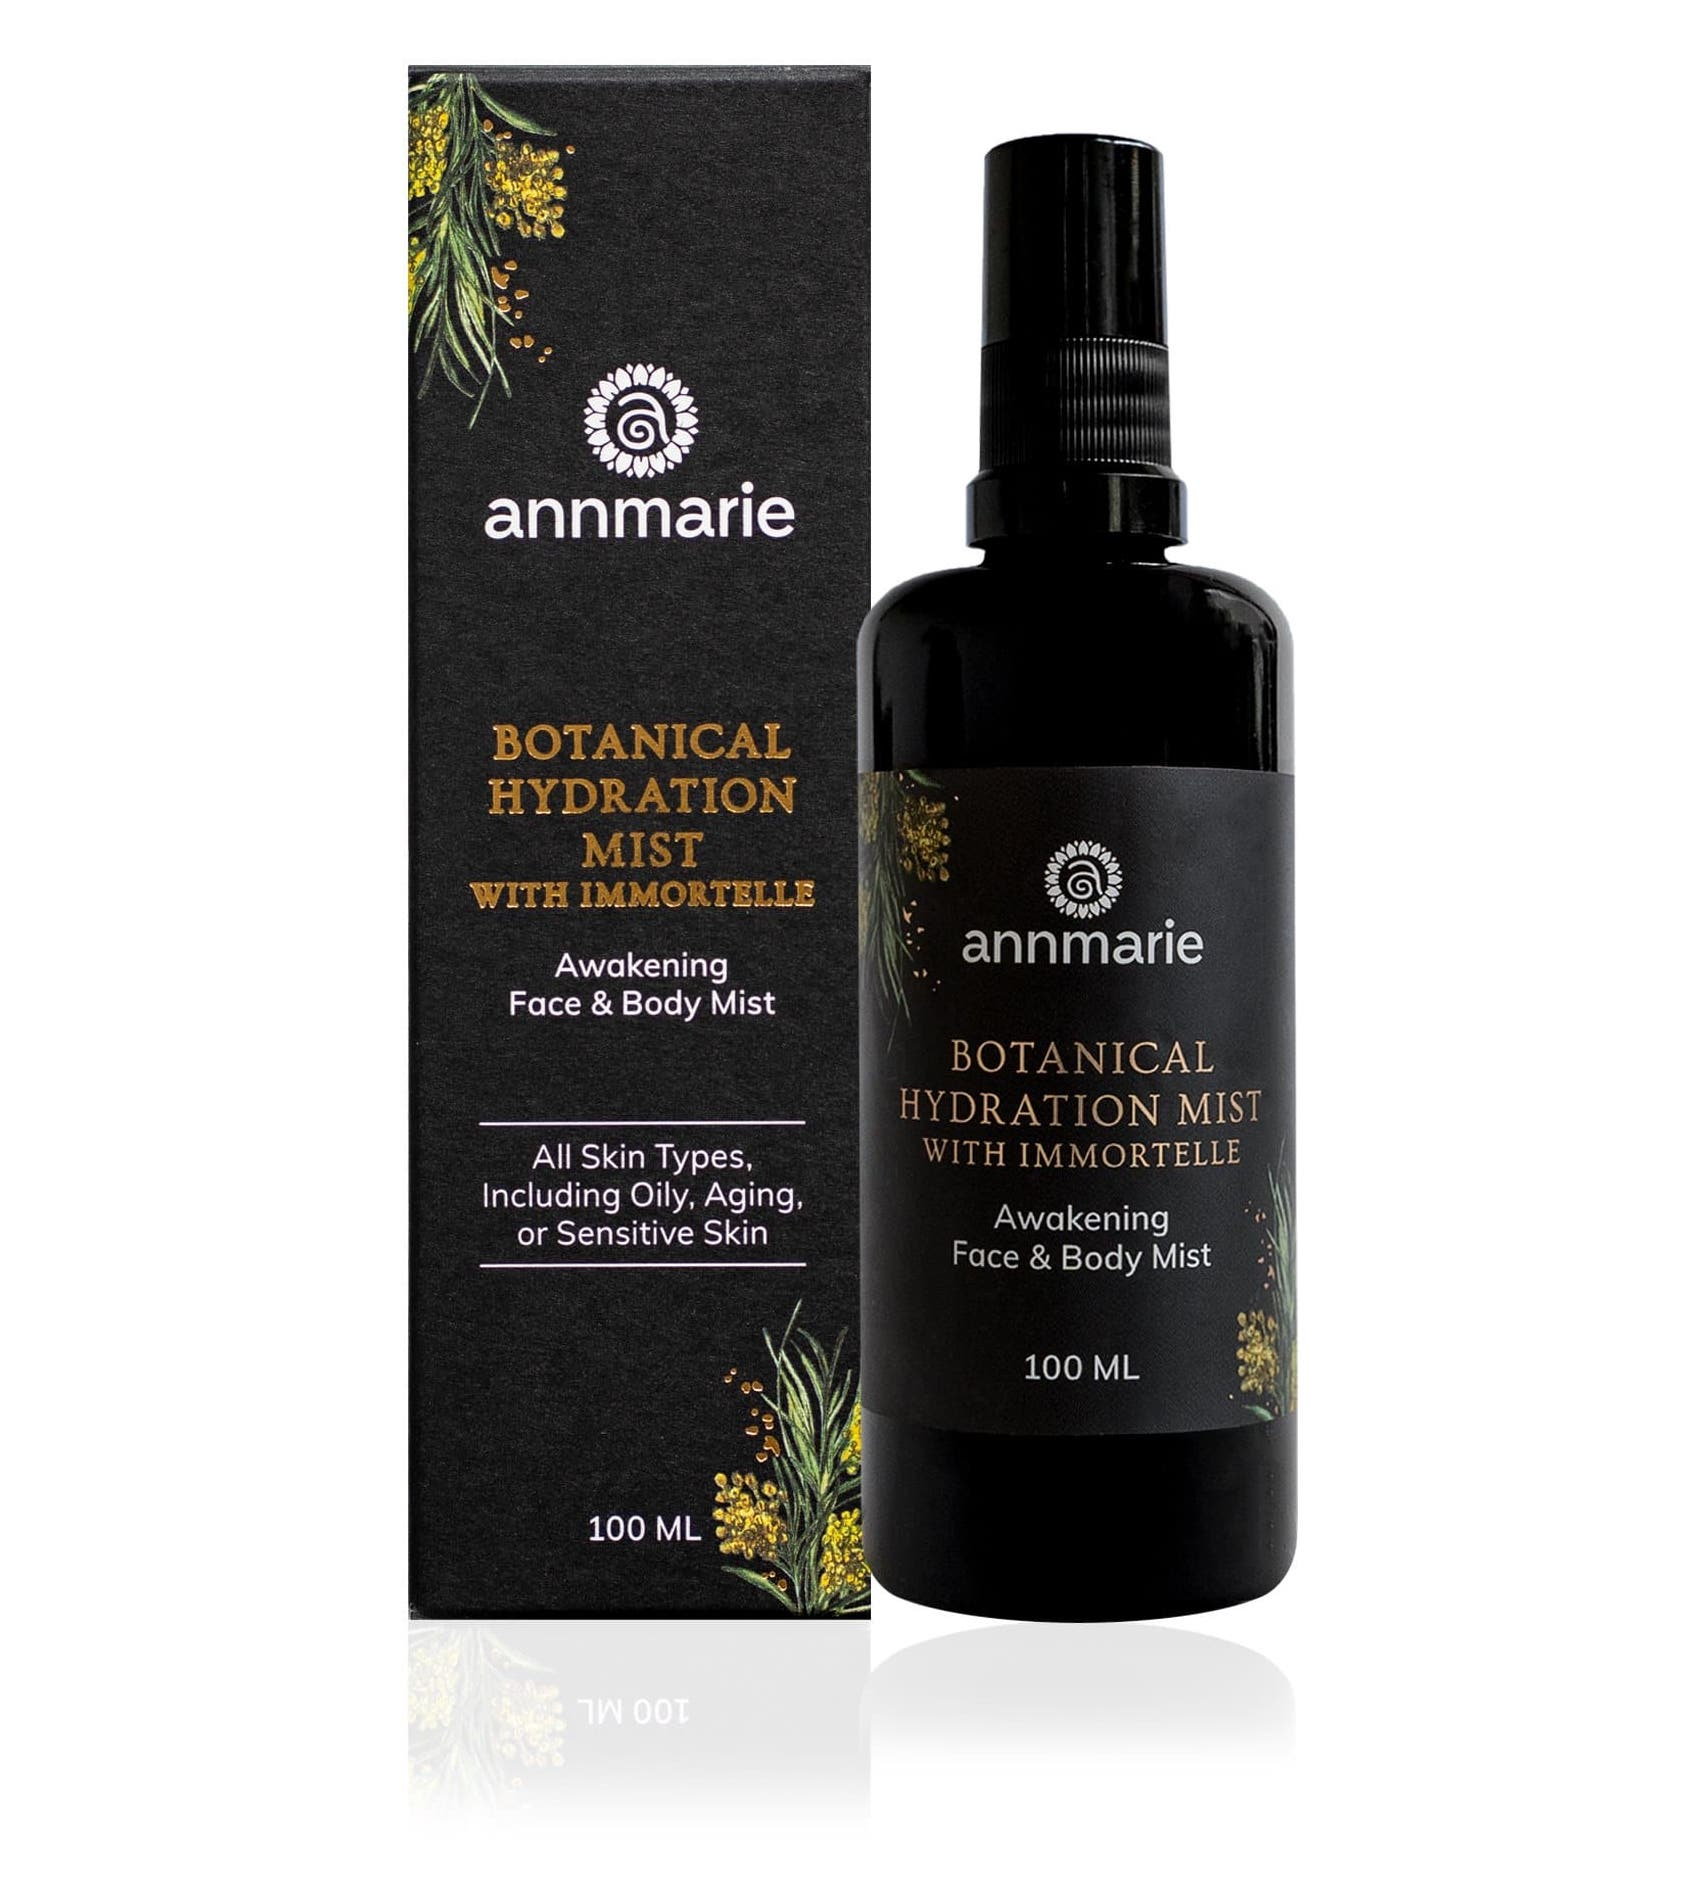 Botanical Hydration Mist With Immortelle